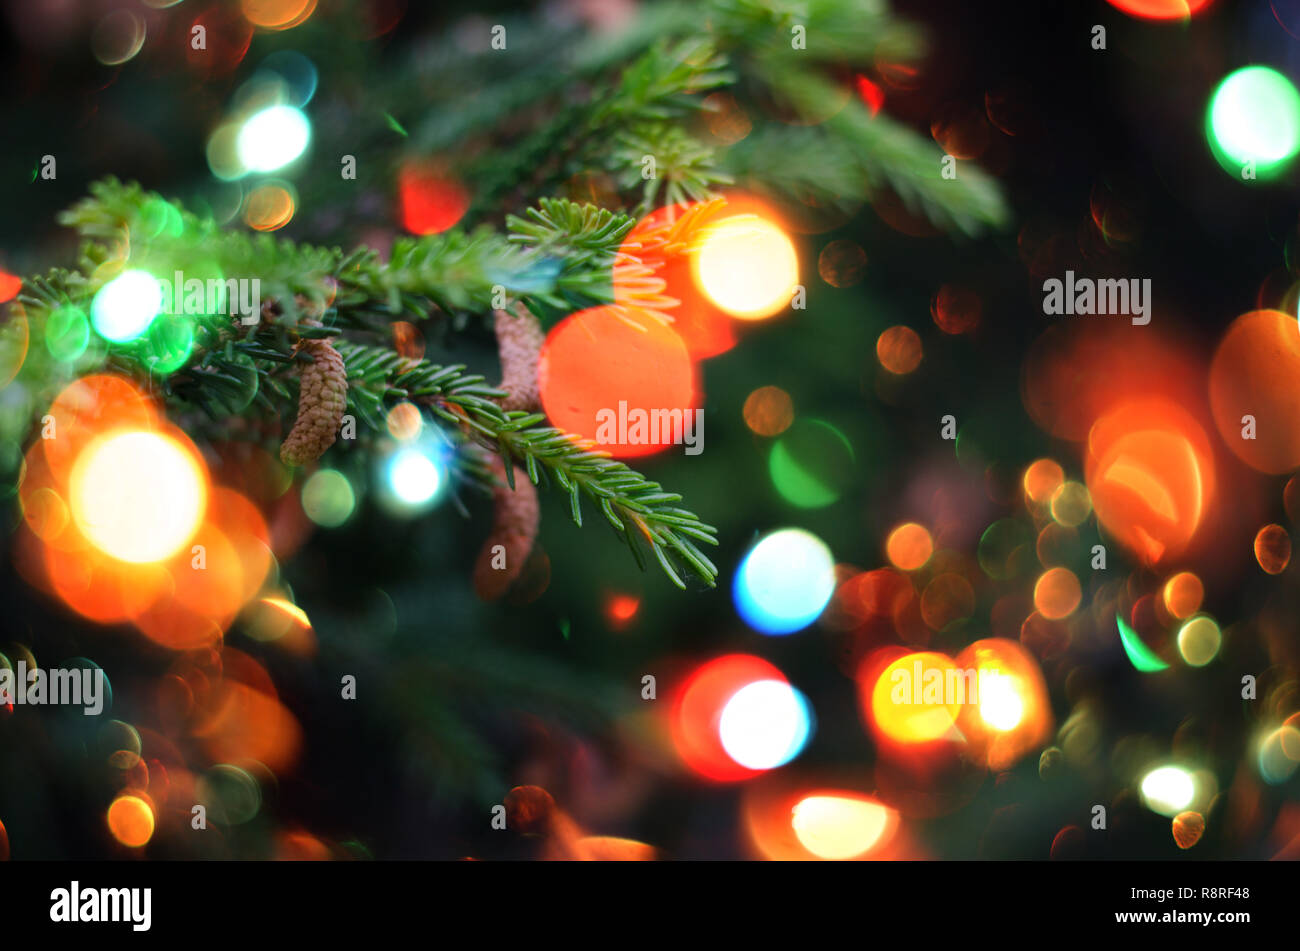 Christmas holiday background. Christmas fir tree against